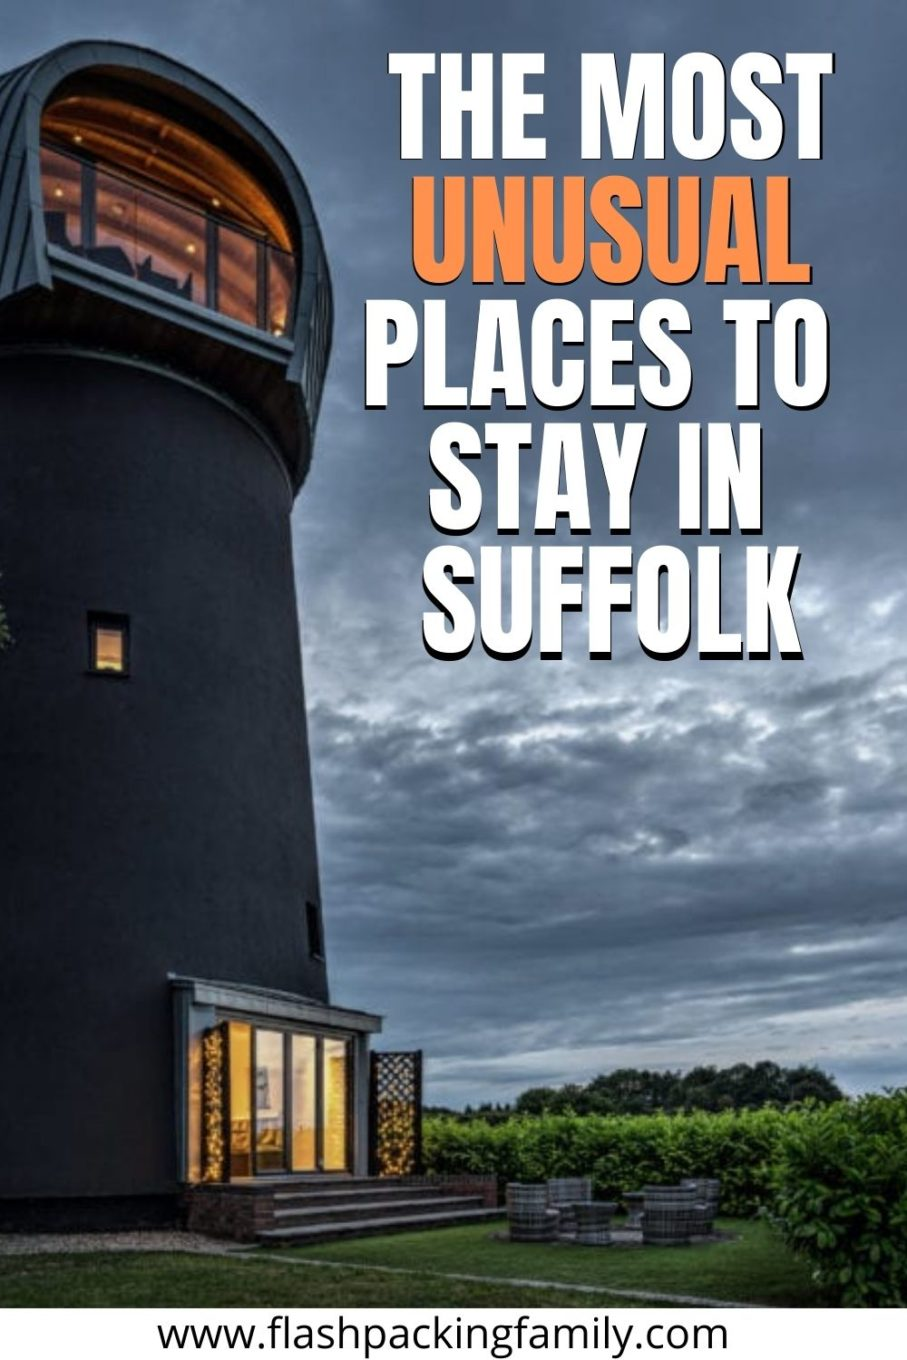 The Most Unusual Places To Stay in Suffolk.